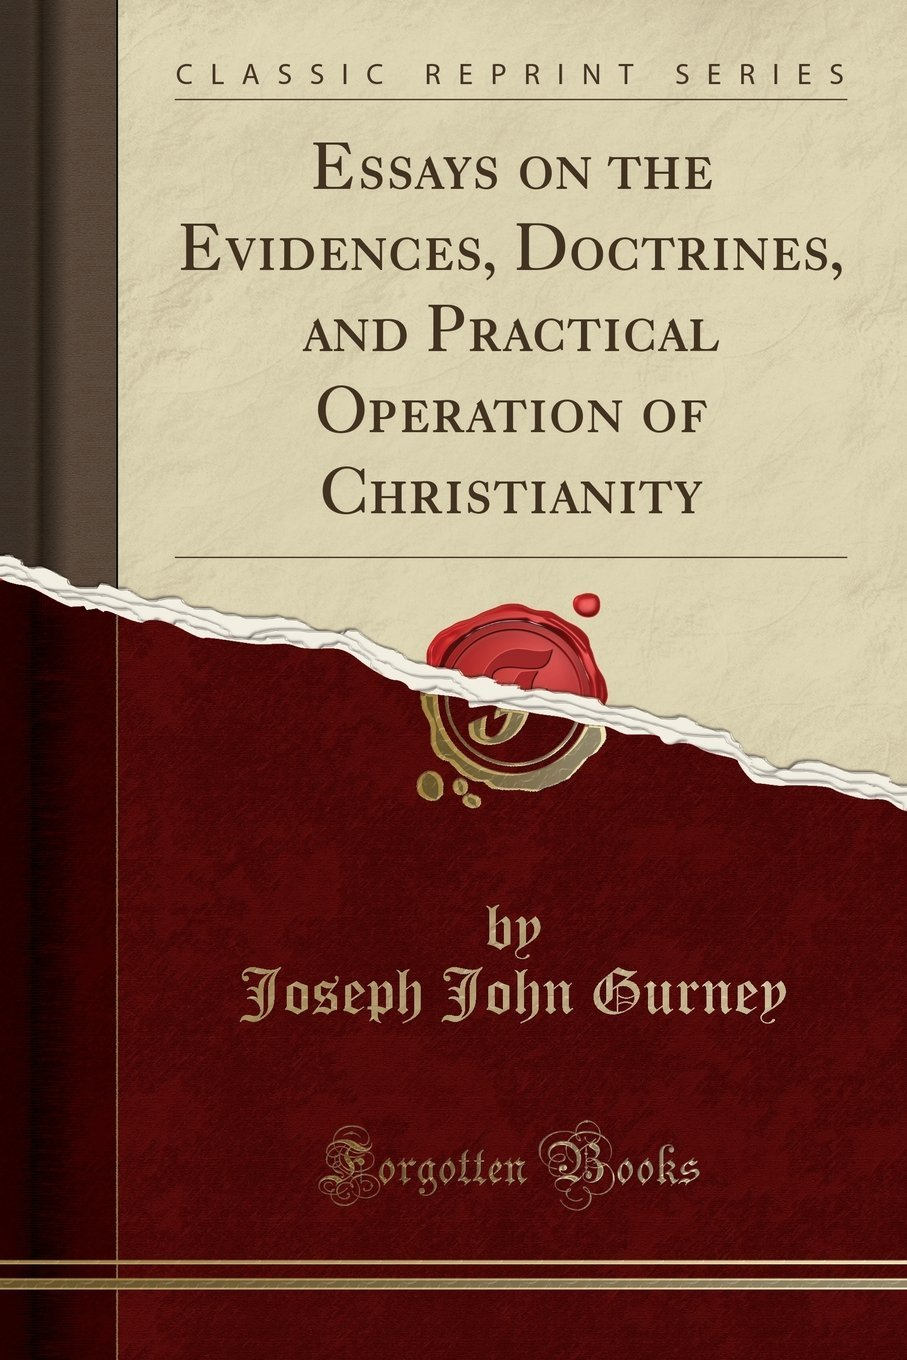 Essays on the Evidences, Doctrines, and Practical Operation of Christianity (Classic Reprint) pdf